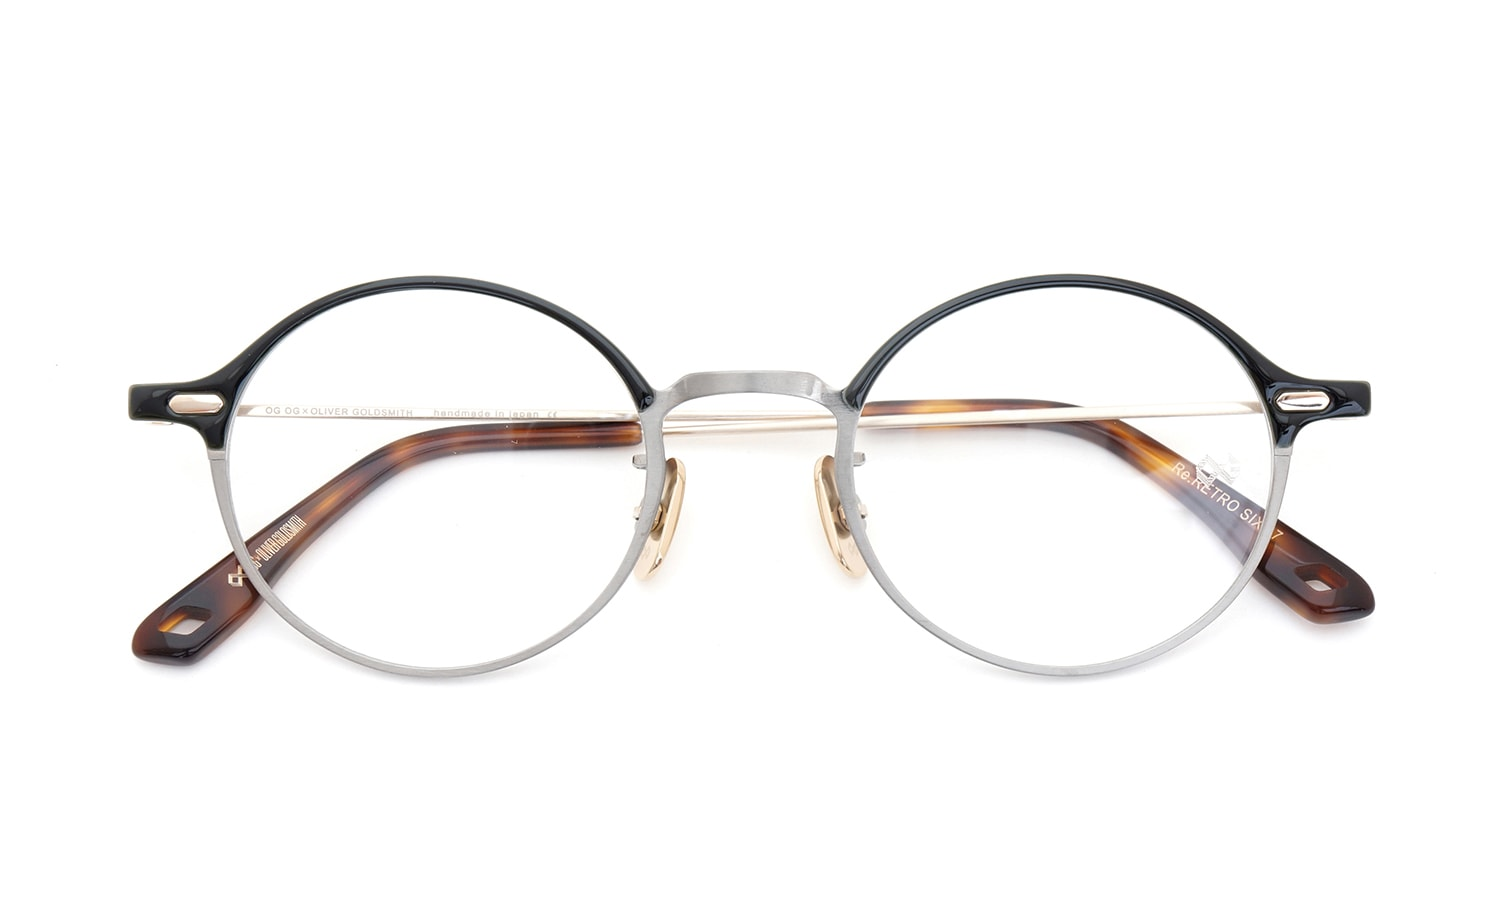 OG×OLIVERGOLDSMITH Re:RETRO SIX 47 Col.051